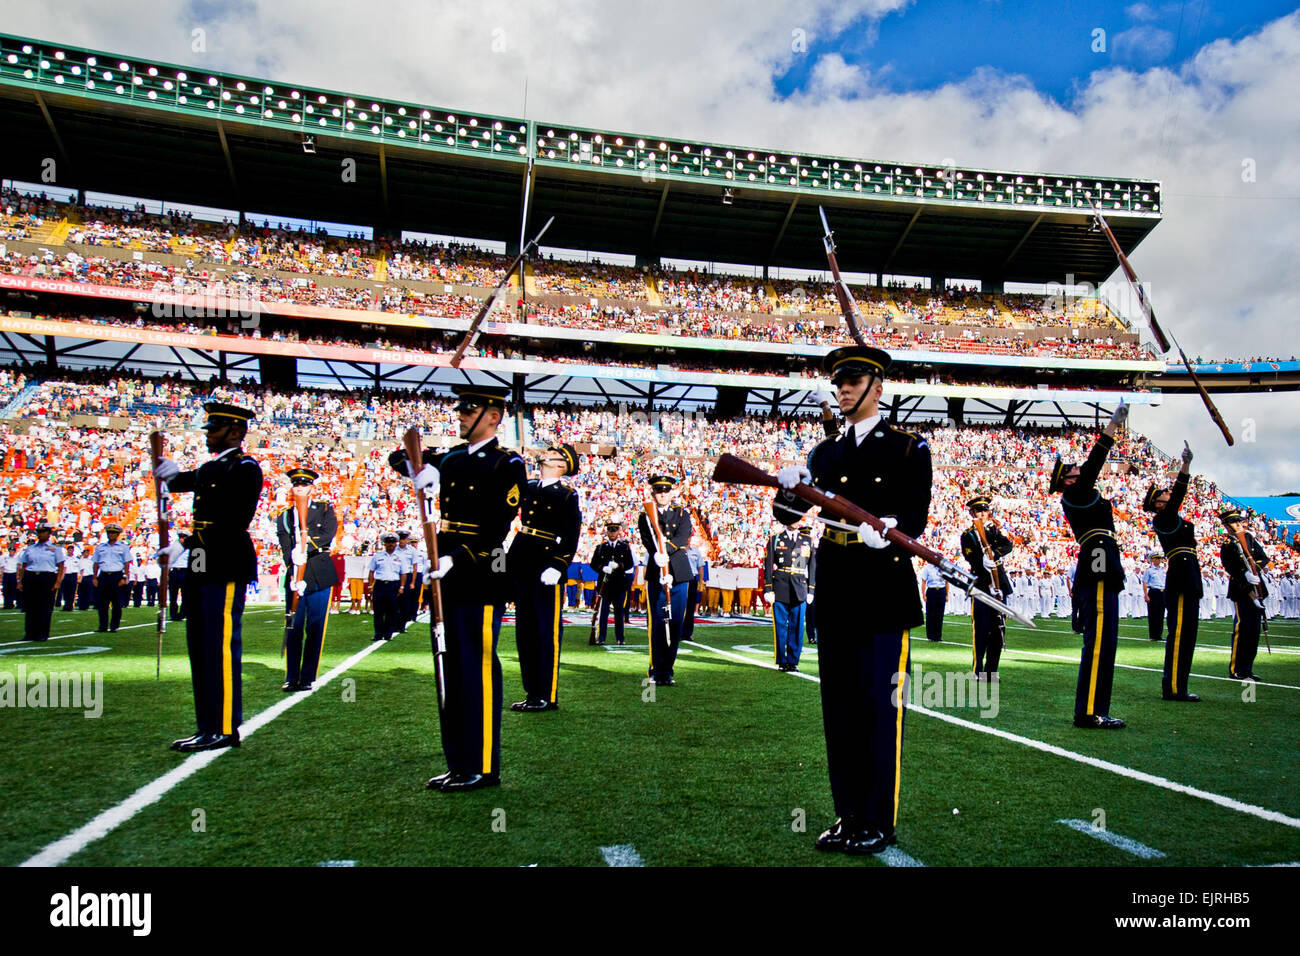 Soldiers assigned to the U.S. Army Drill Team perform at Aloha Stadium during the 2012 National Football League Stock Photo